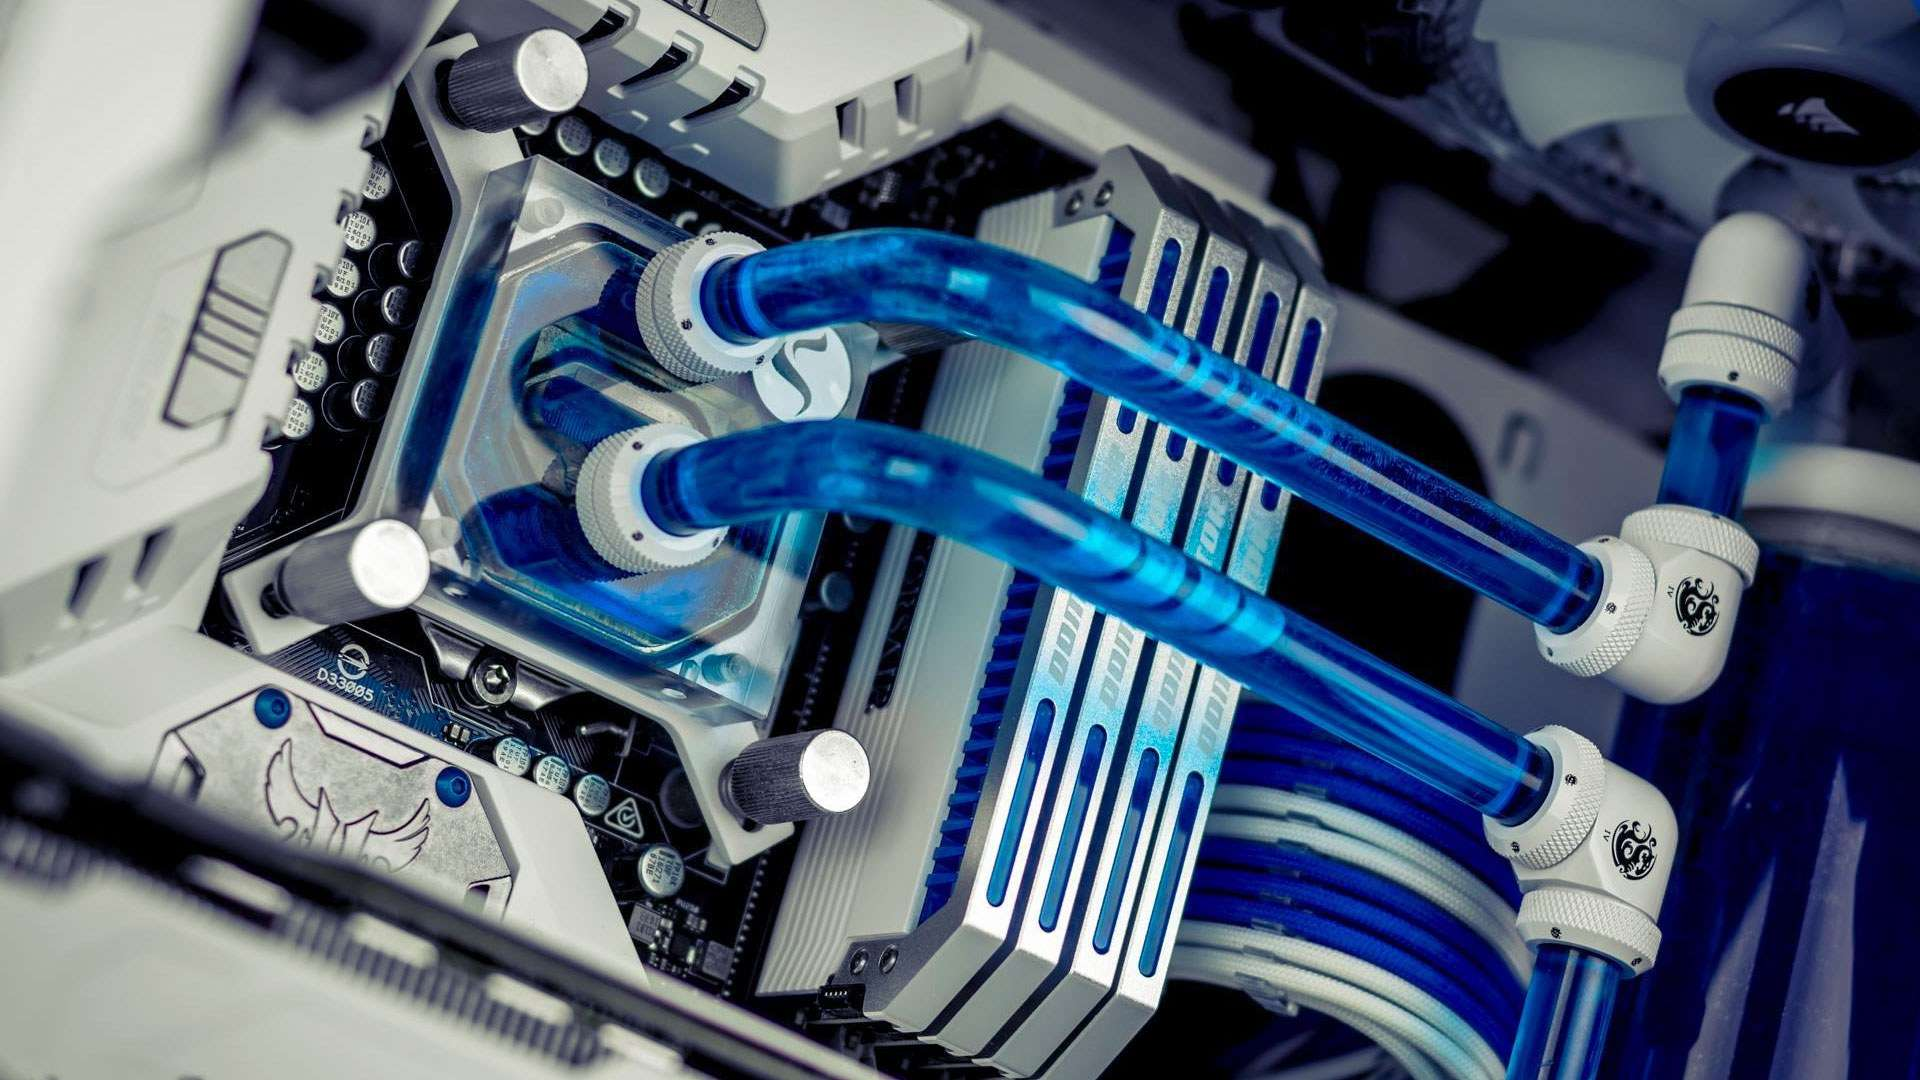 A photo of blue coolant in a custom computer